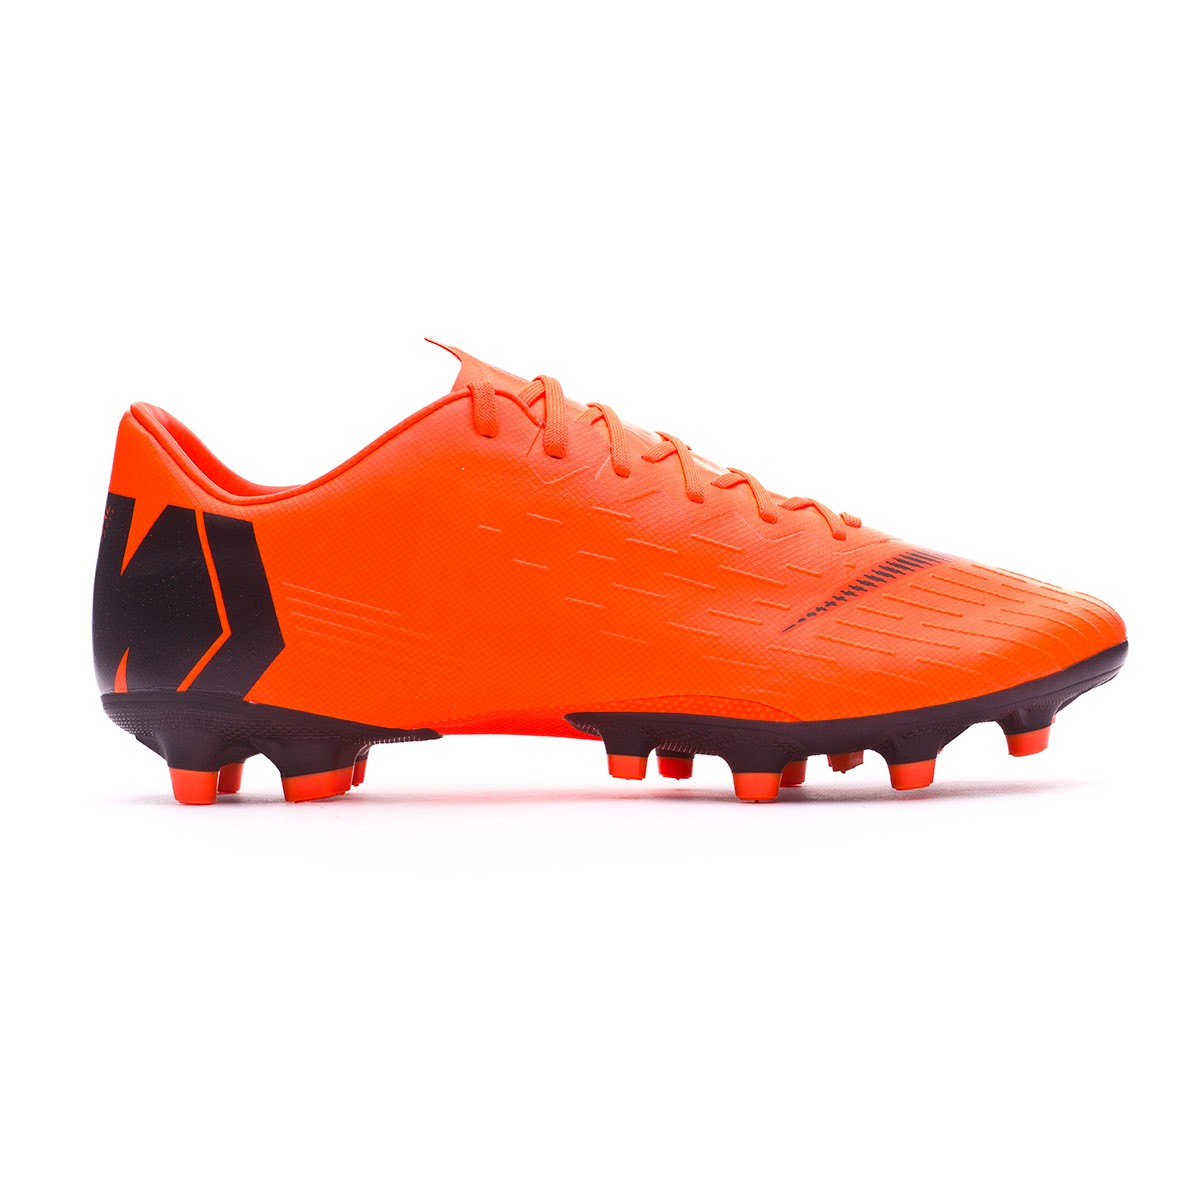 383c217798b6 Football Boots Nike Mercurial Vapor XII Pro AG-Pro Total orange-Black-Volt  - Football store Fútbol Emotion